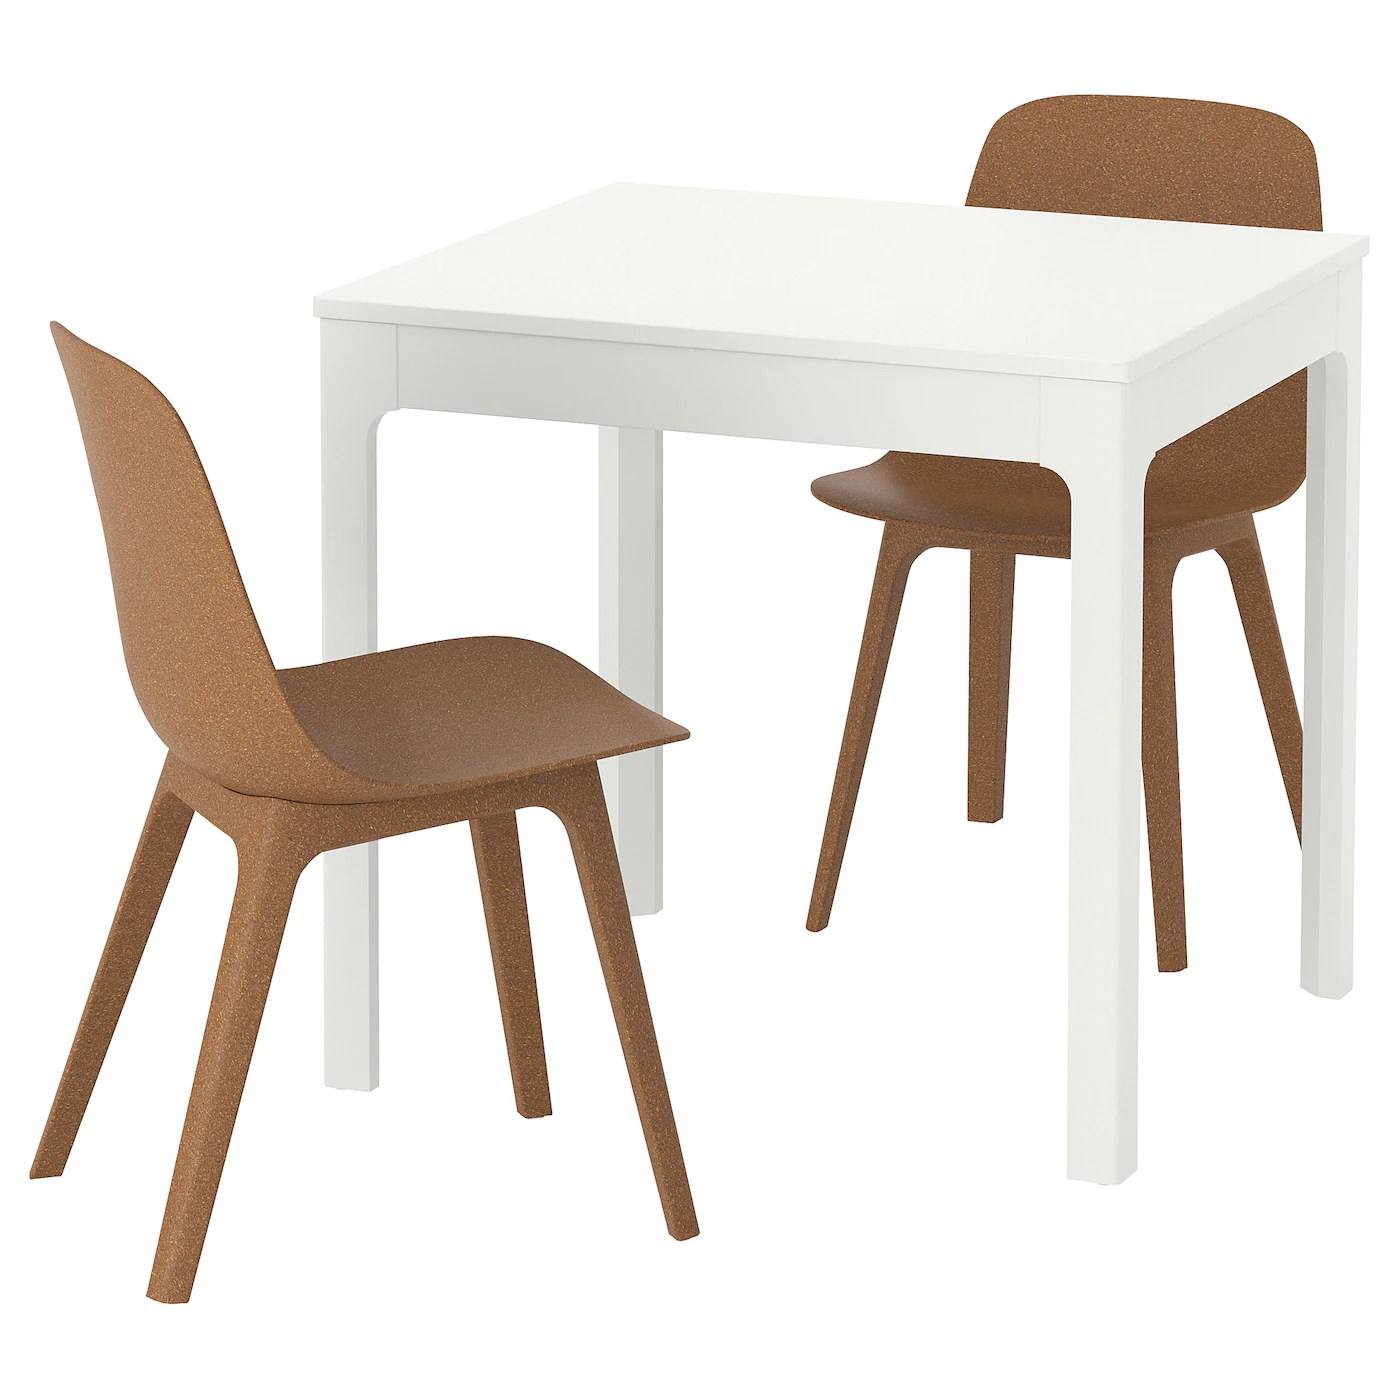 Table With 2 Chairs Small Dining Table Sets 2 Seater Dining Table Chairs Ikea